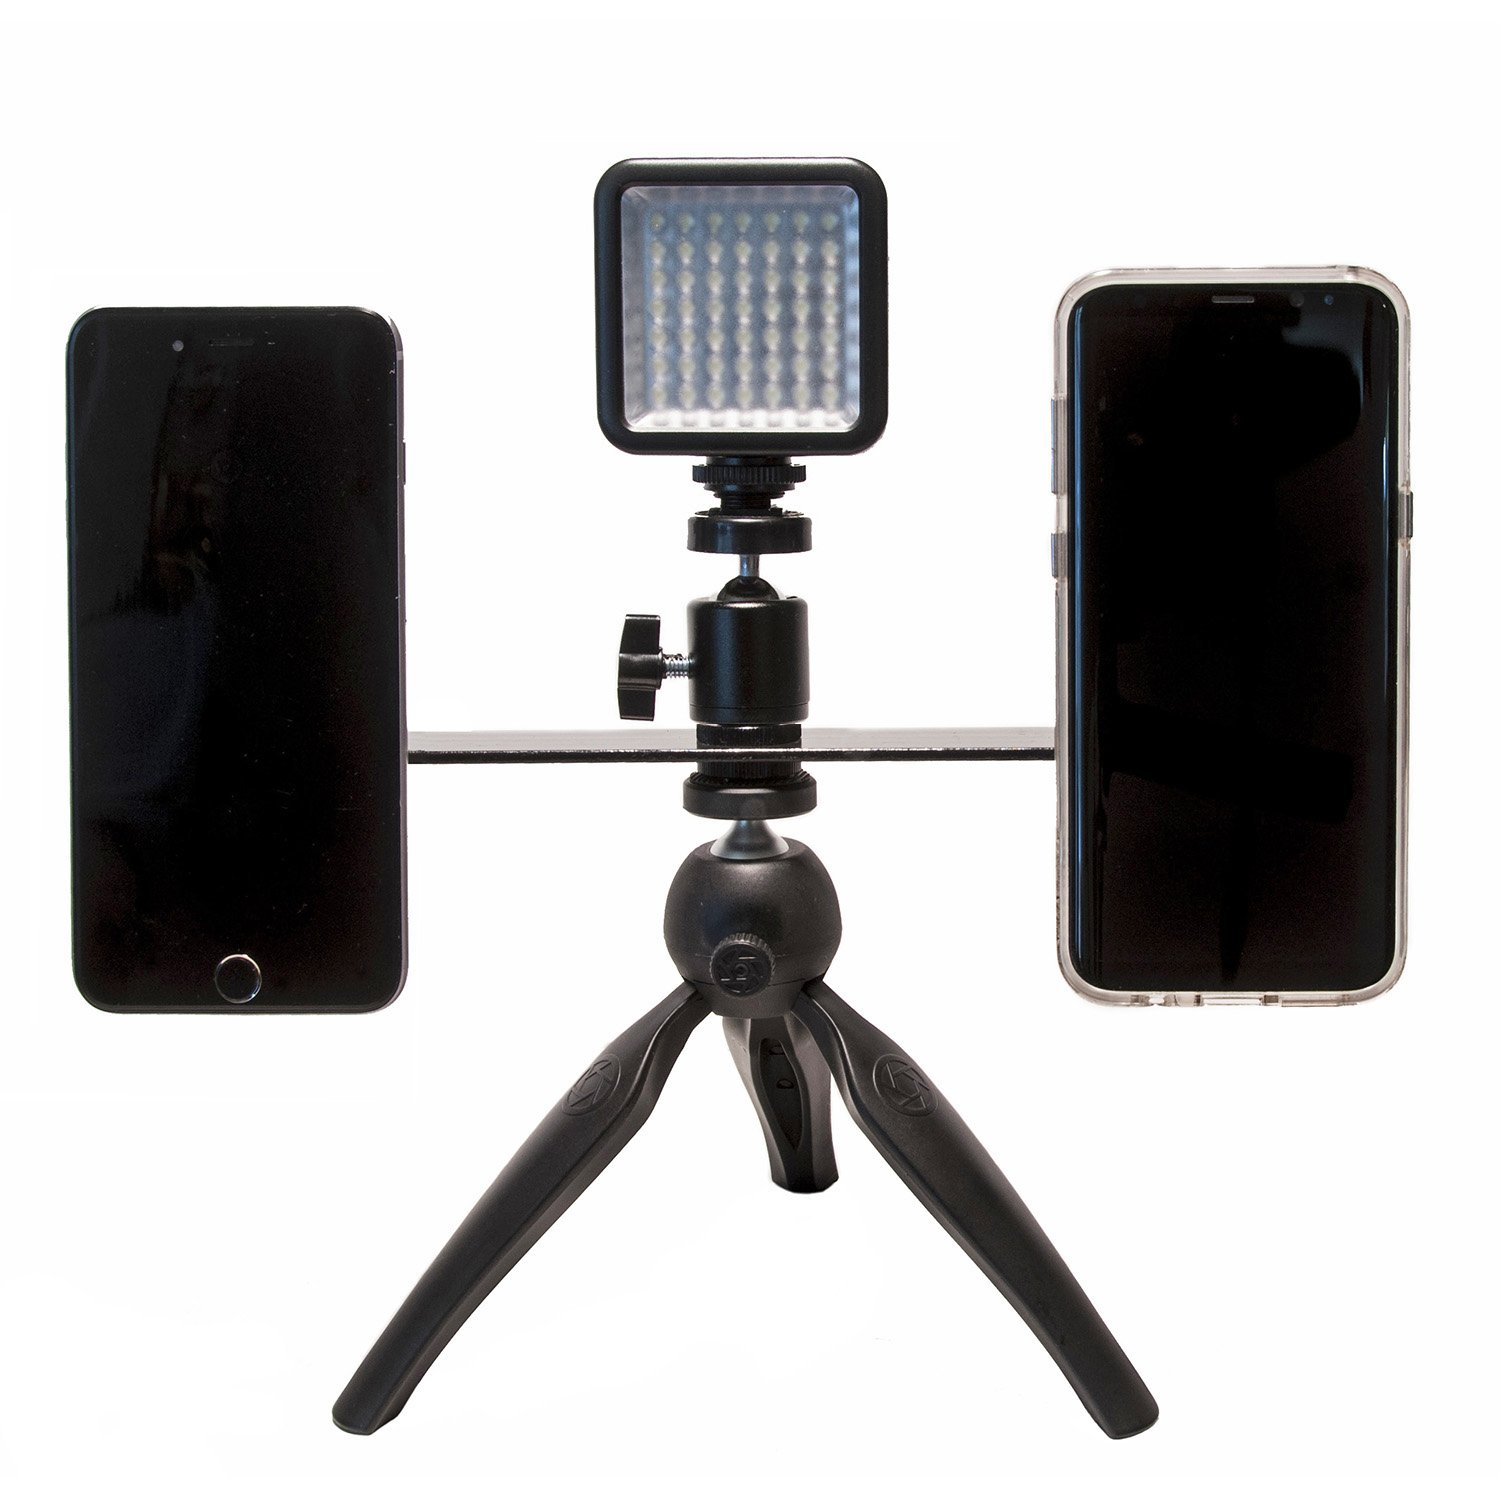 Livestream Gear - Dual Device Mounting Bar for Live Stream, 2 Magnetic Mounts Secure Any Phone. Includes 1/4''-20 Threads to Attach Tripod. (Dual Mount Tripod w/Magnets & LED Light)